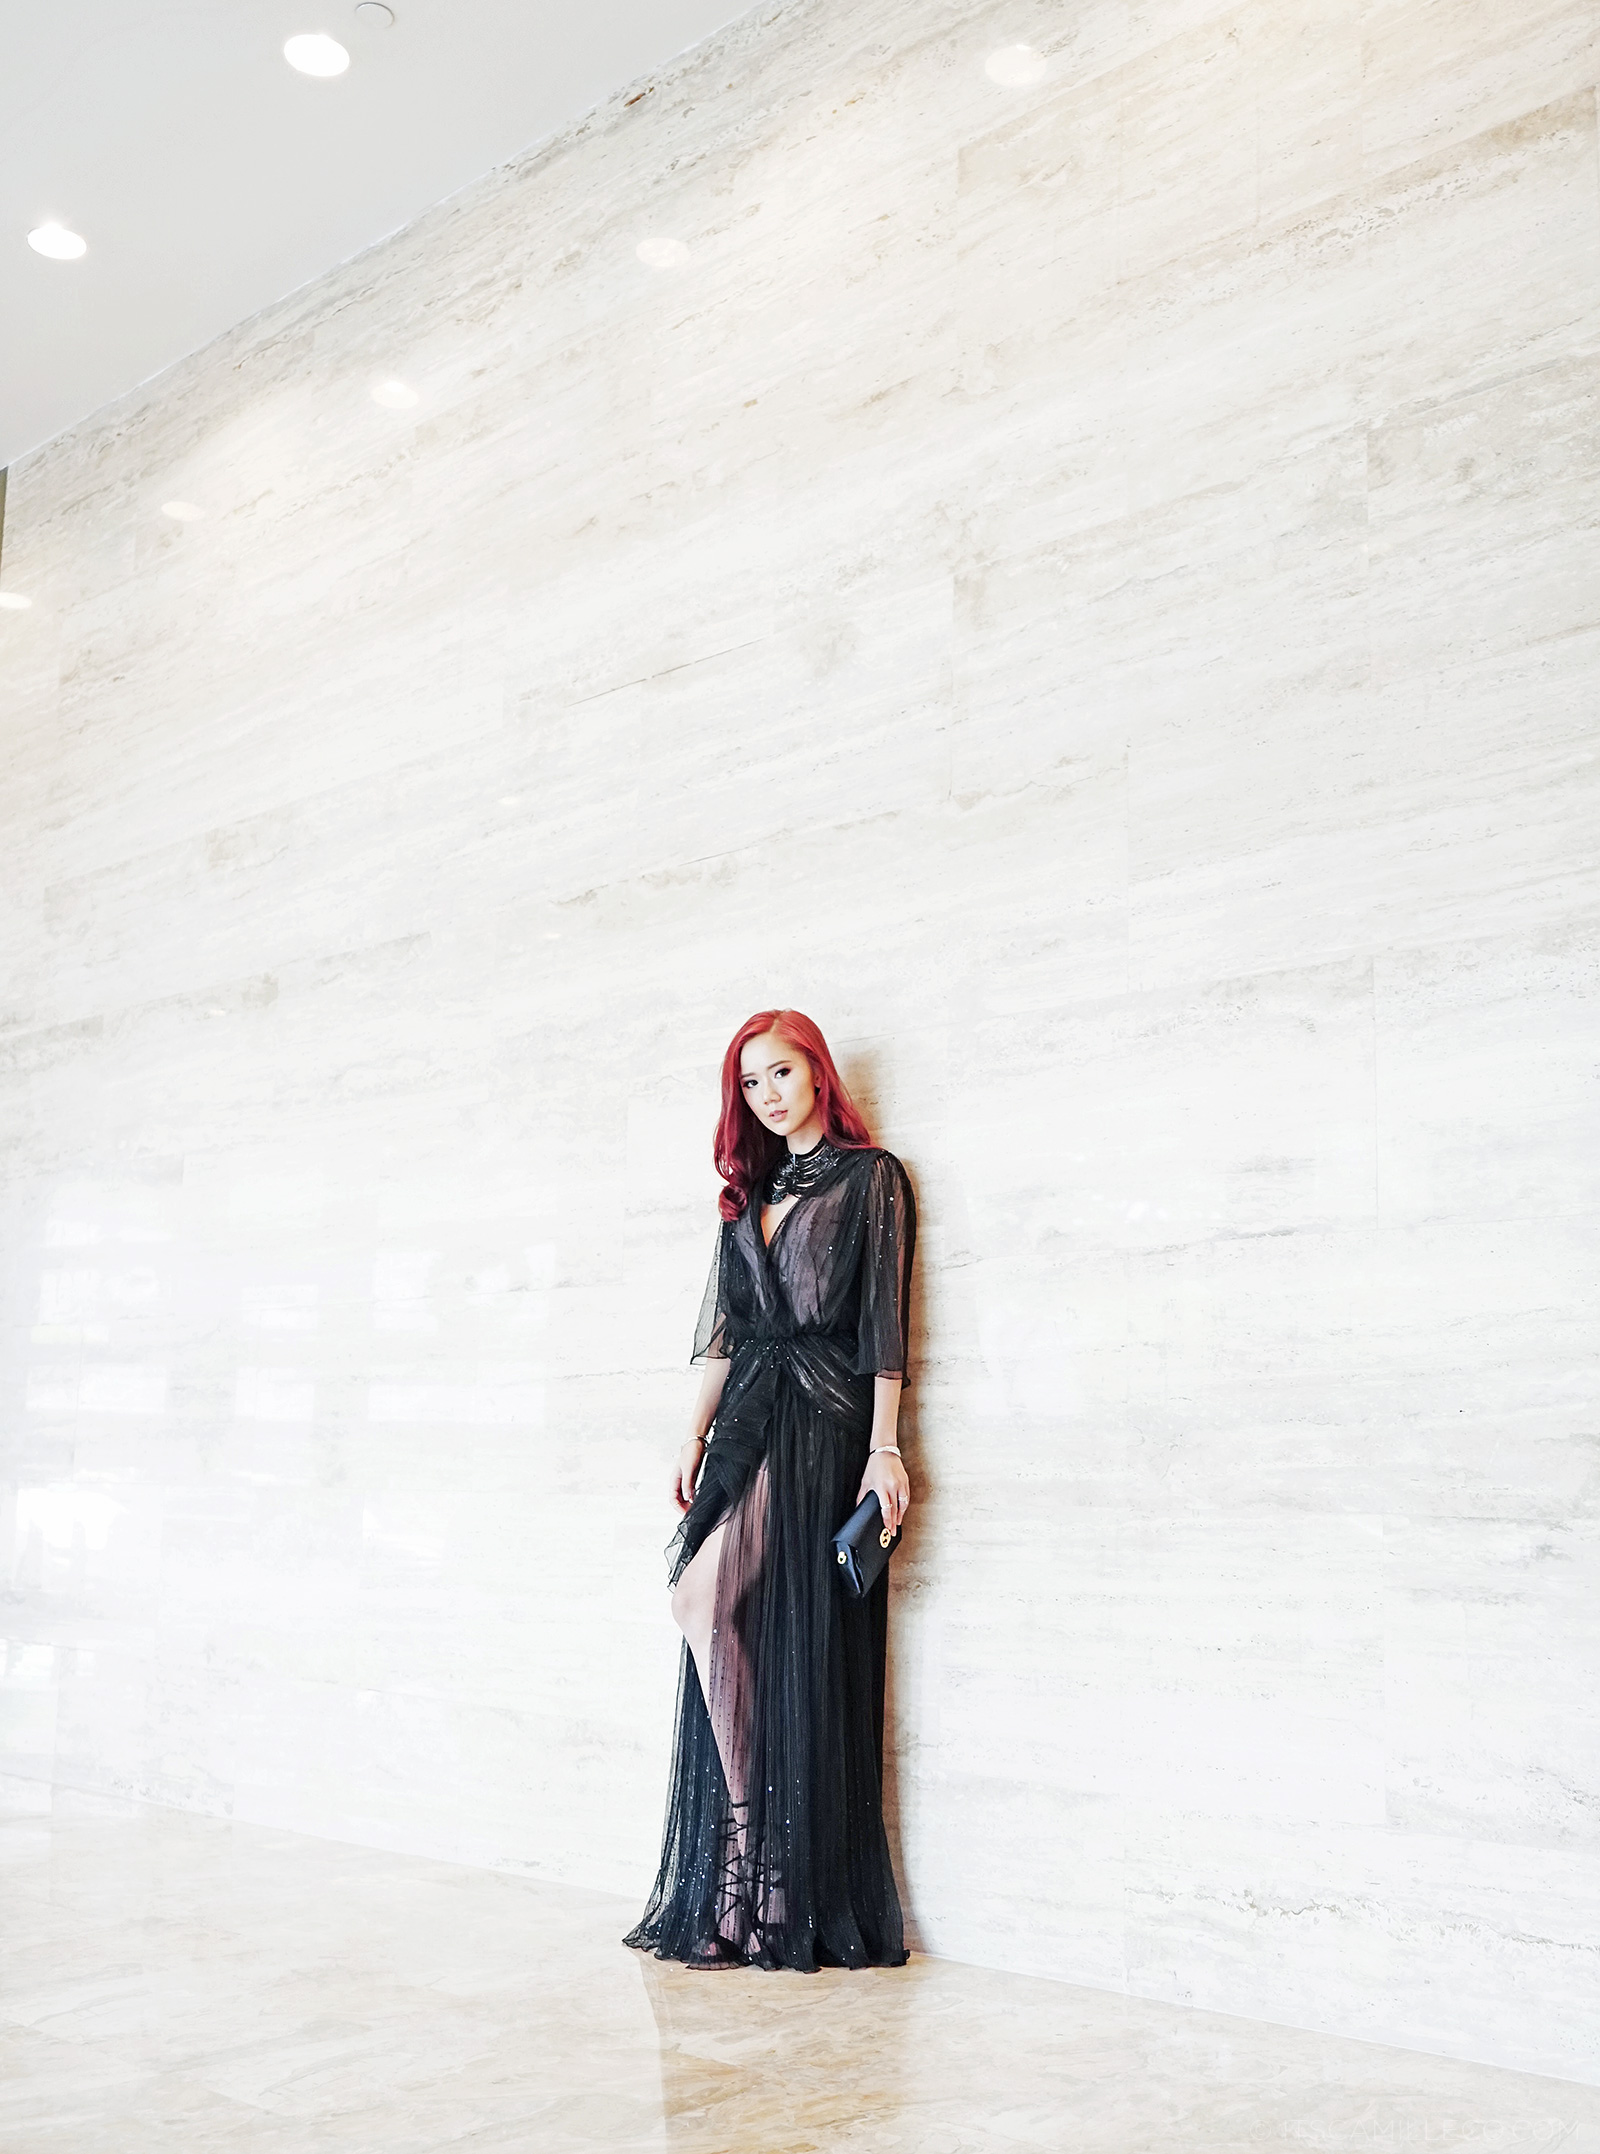 Sheer Black Gown By Camille Co  - www.itscamilleco.com